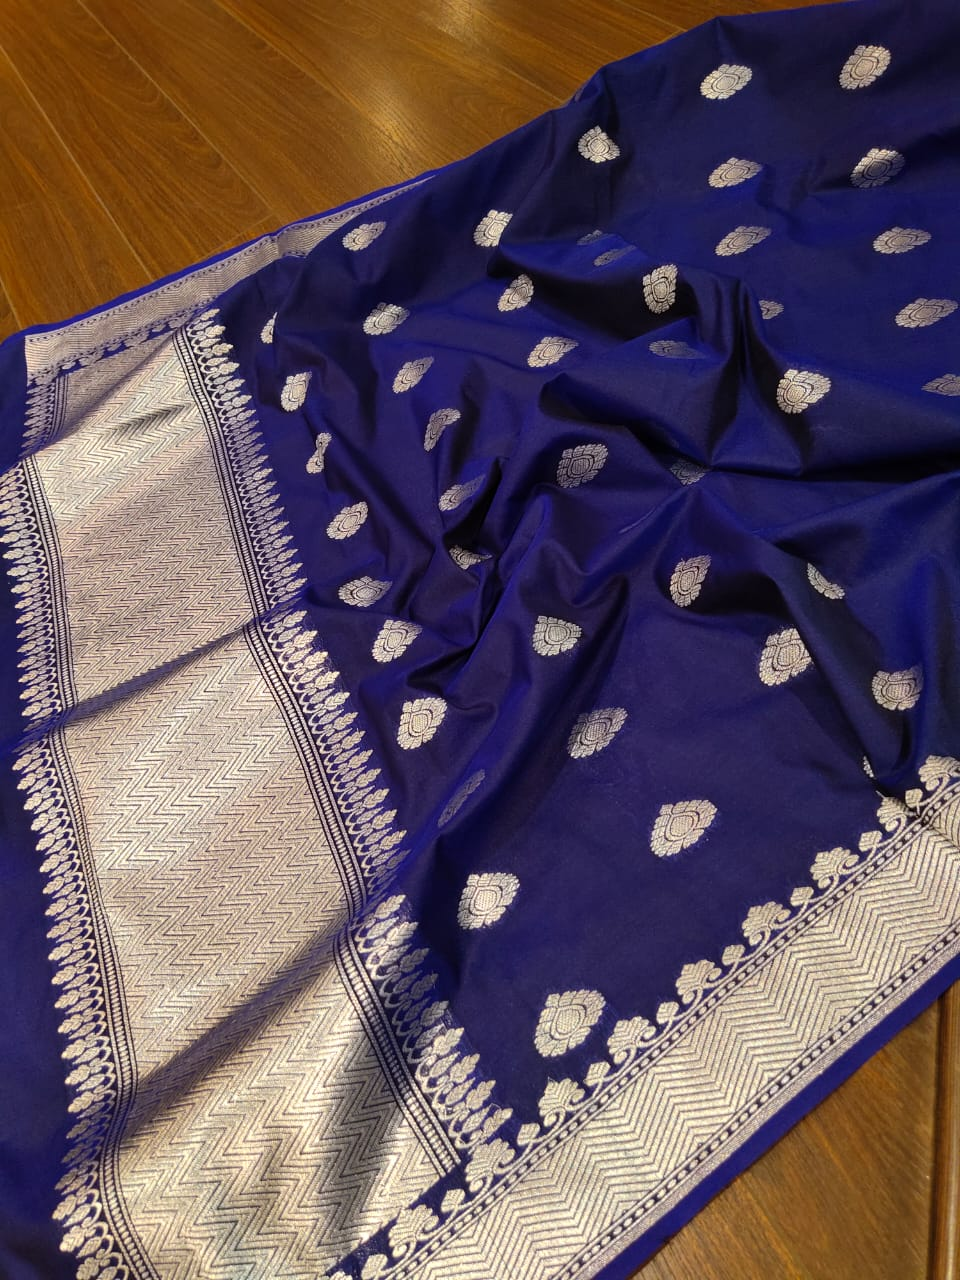 Navy blue dupatta with silver zari weaving and booties all over